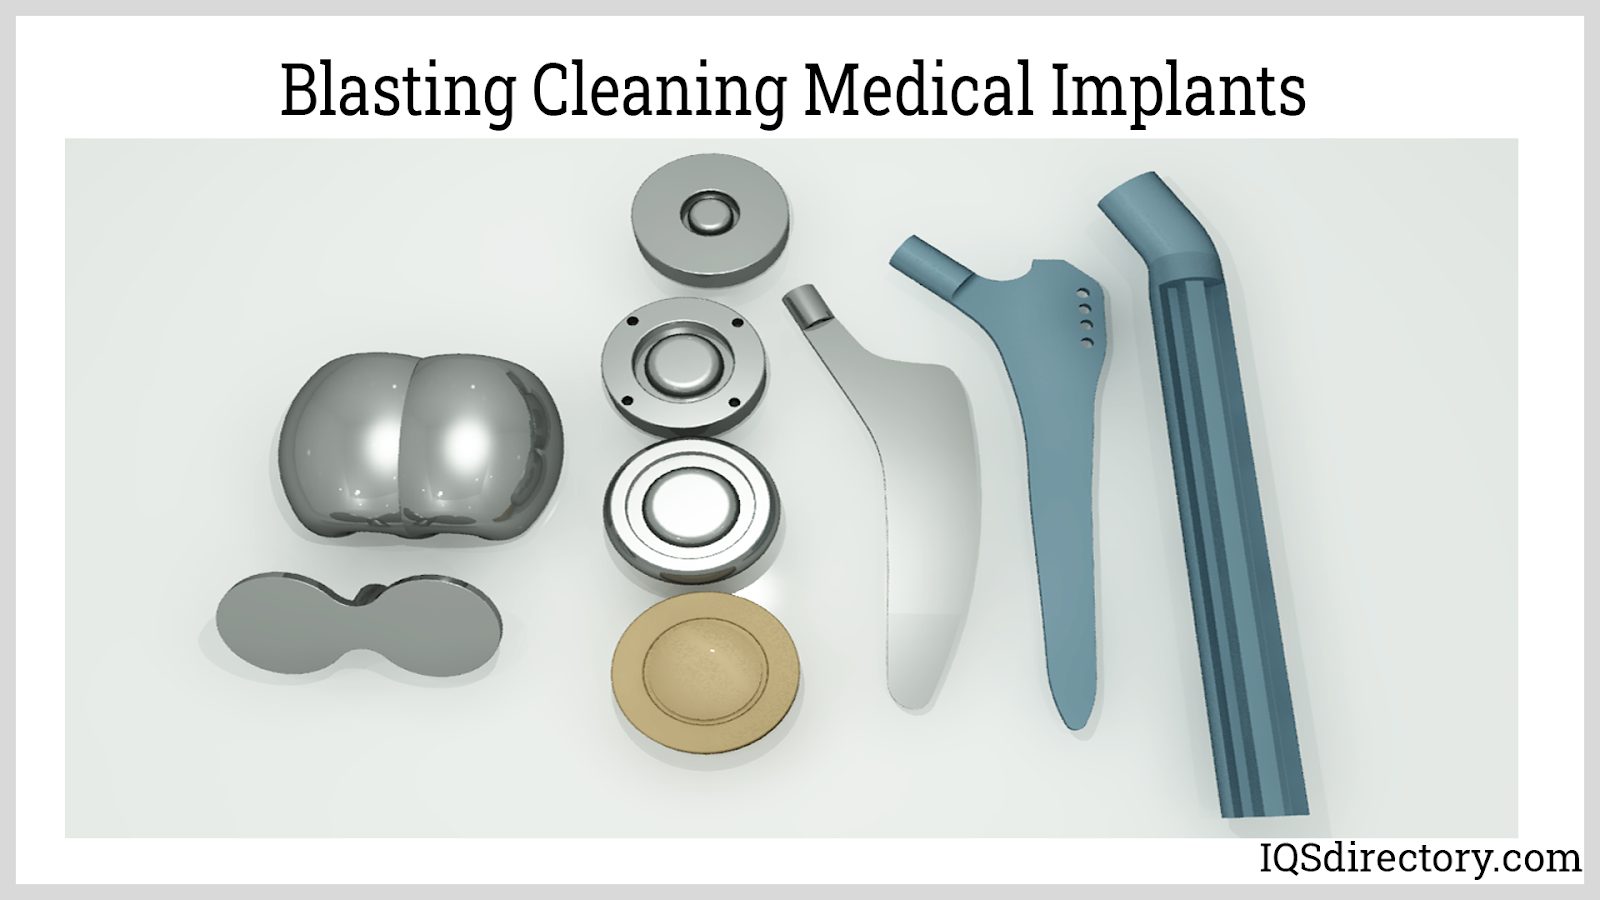 Blasting Cleaning Medical Implants